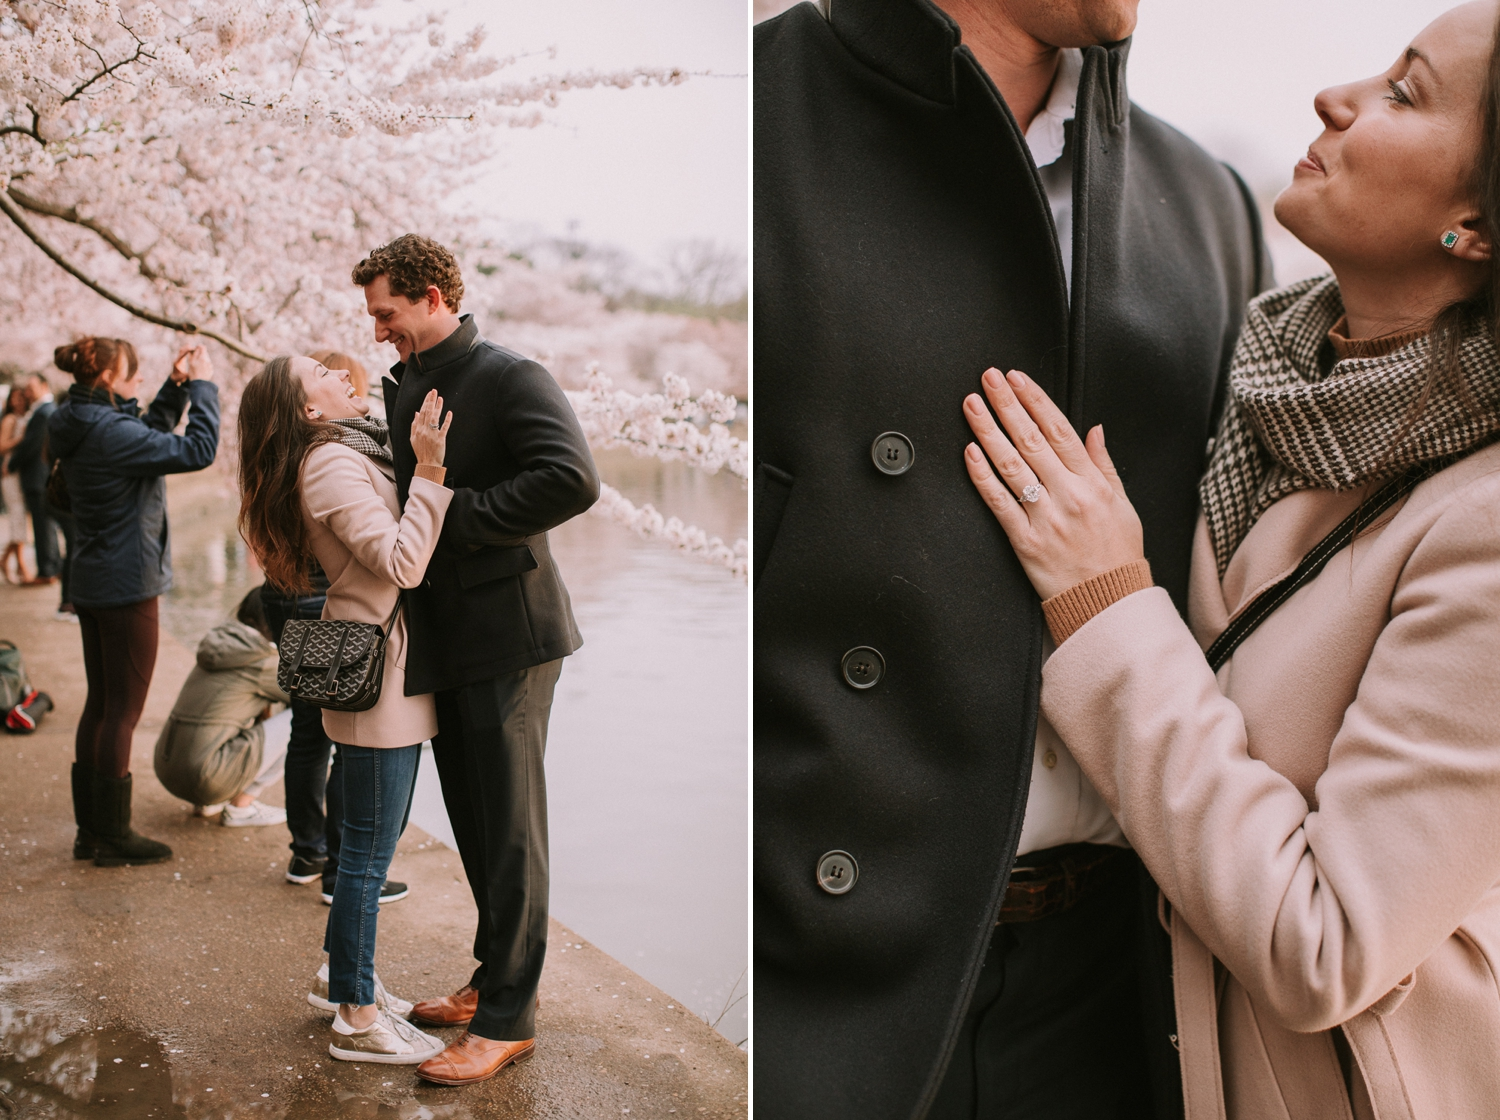 washington-dc-cherry-blossom-tidal-basin-proposal-photographer 14.jpg